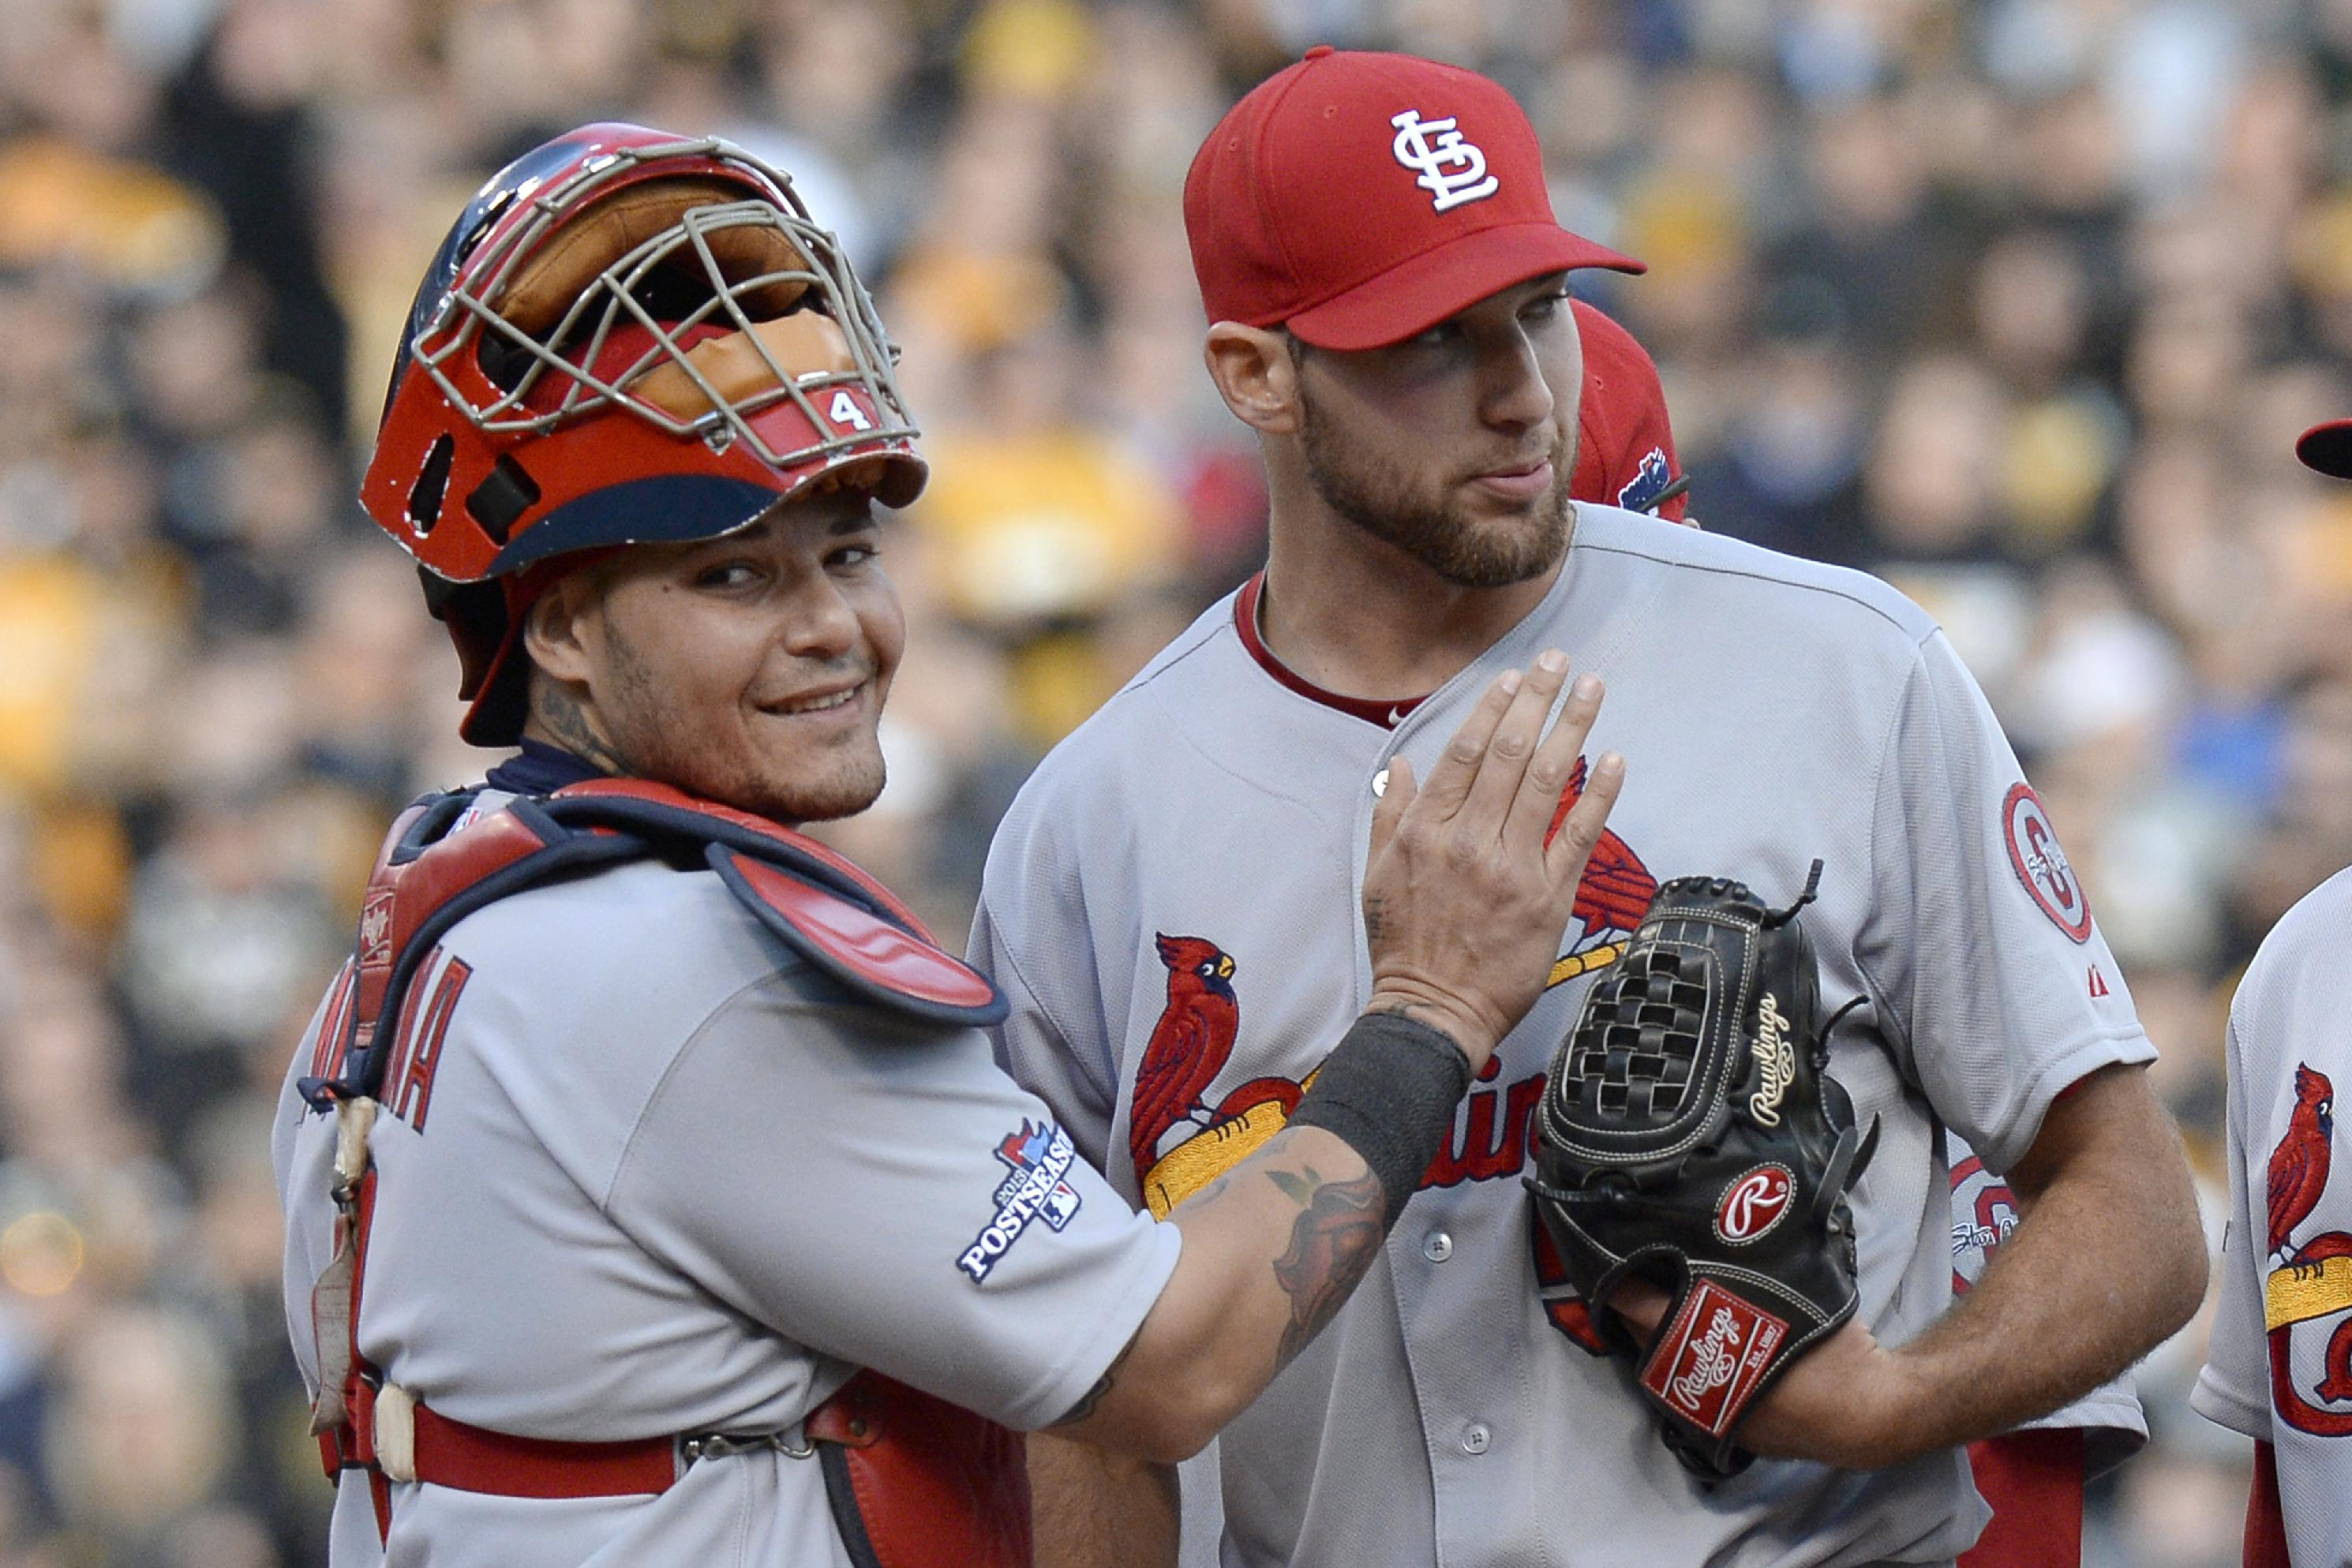 Michael Wacha carried a no-hitter into the eighth inning Monday. (AP)